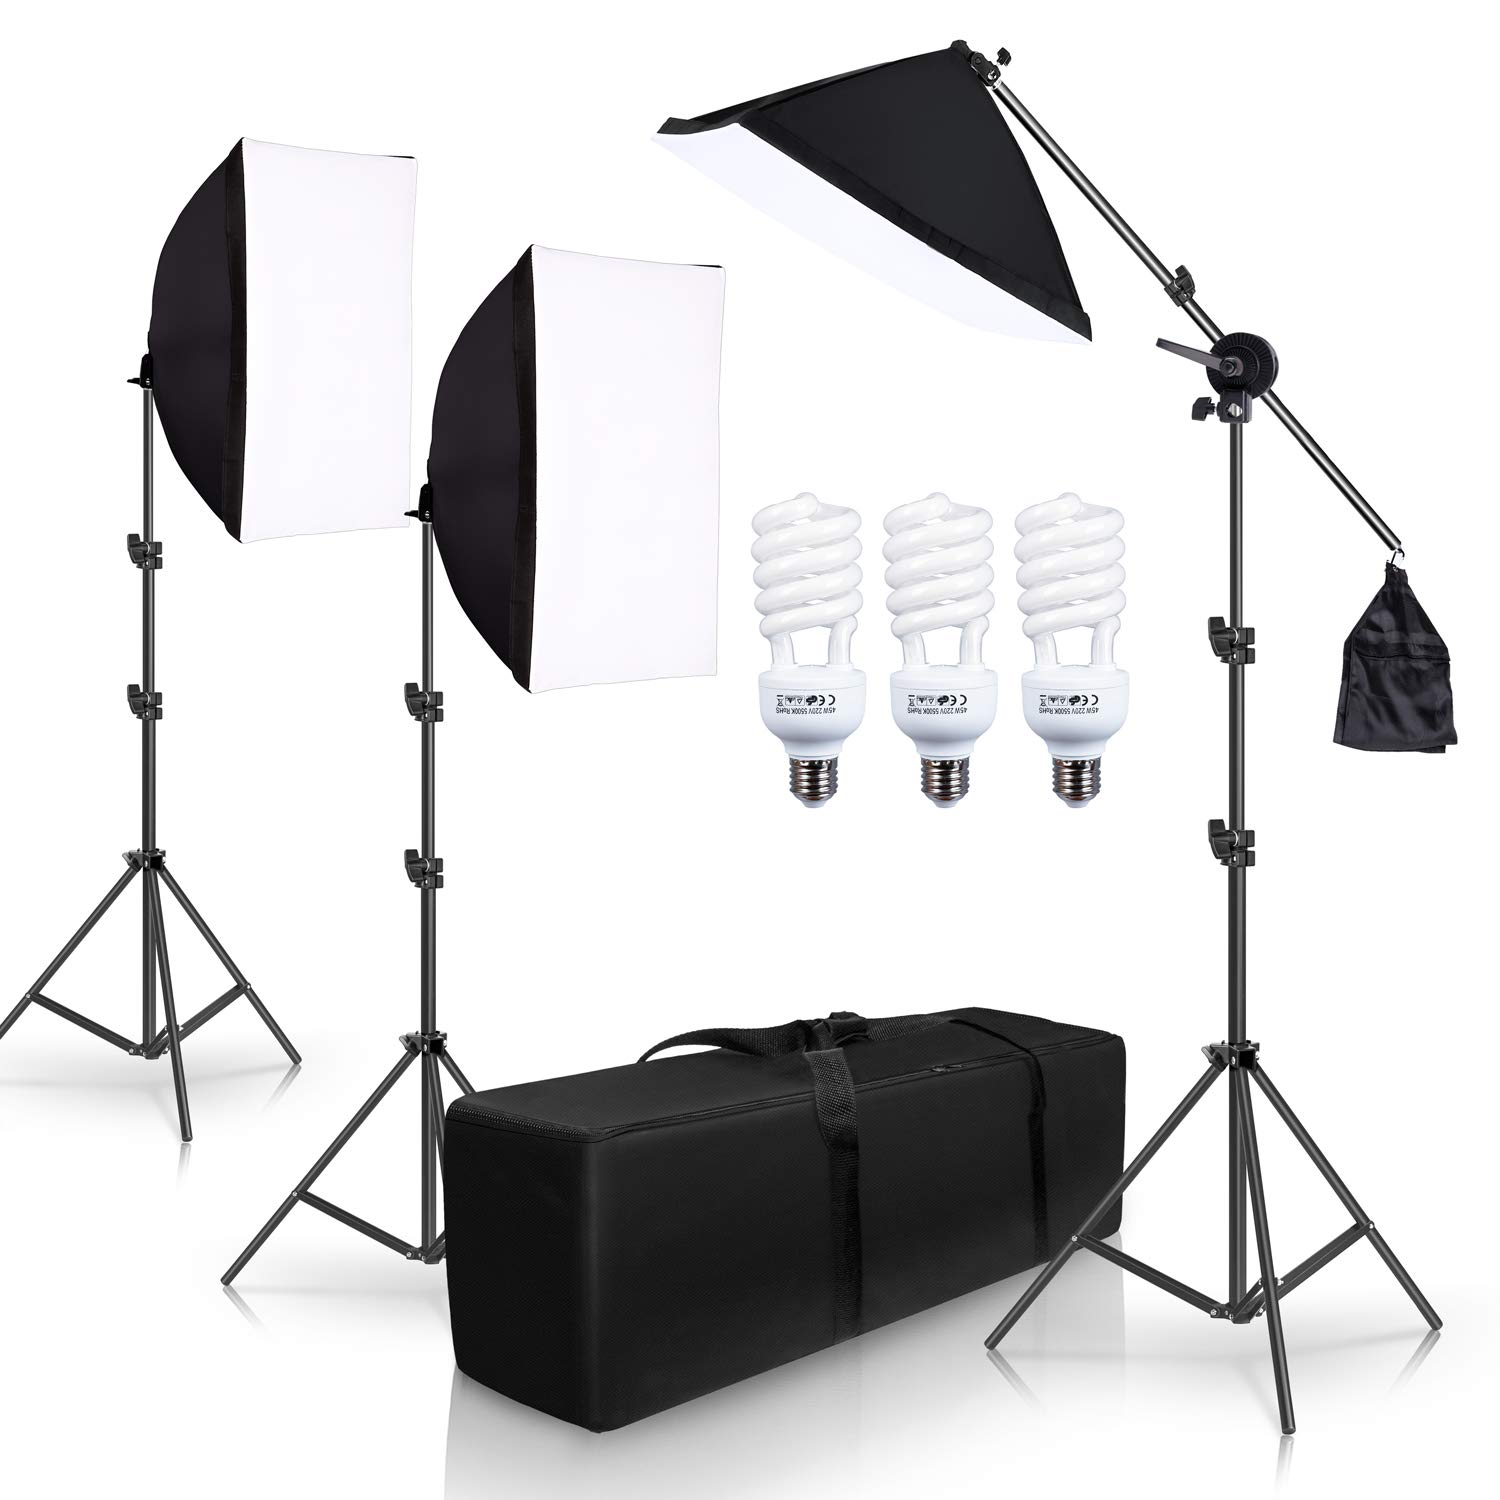 SH Photography Photo Studio Lighting Kit Set Softbox Setup with Light Stand Square Cube Softbox Cantilever Bag softbox with 3 PCS 5500K Daylight Bulbs